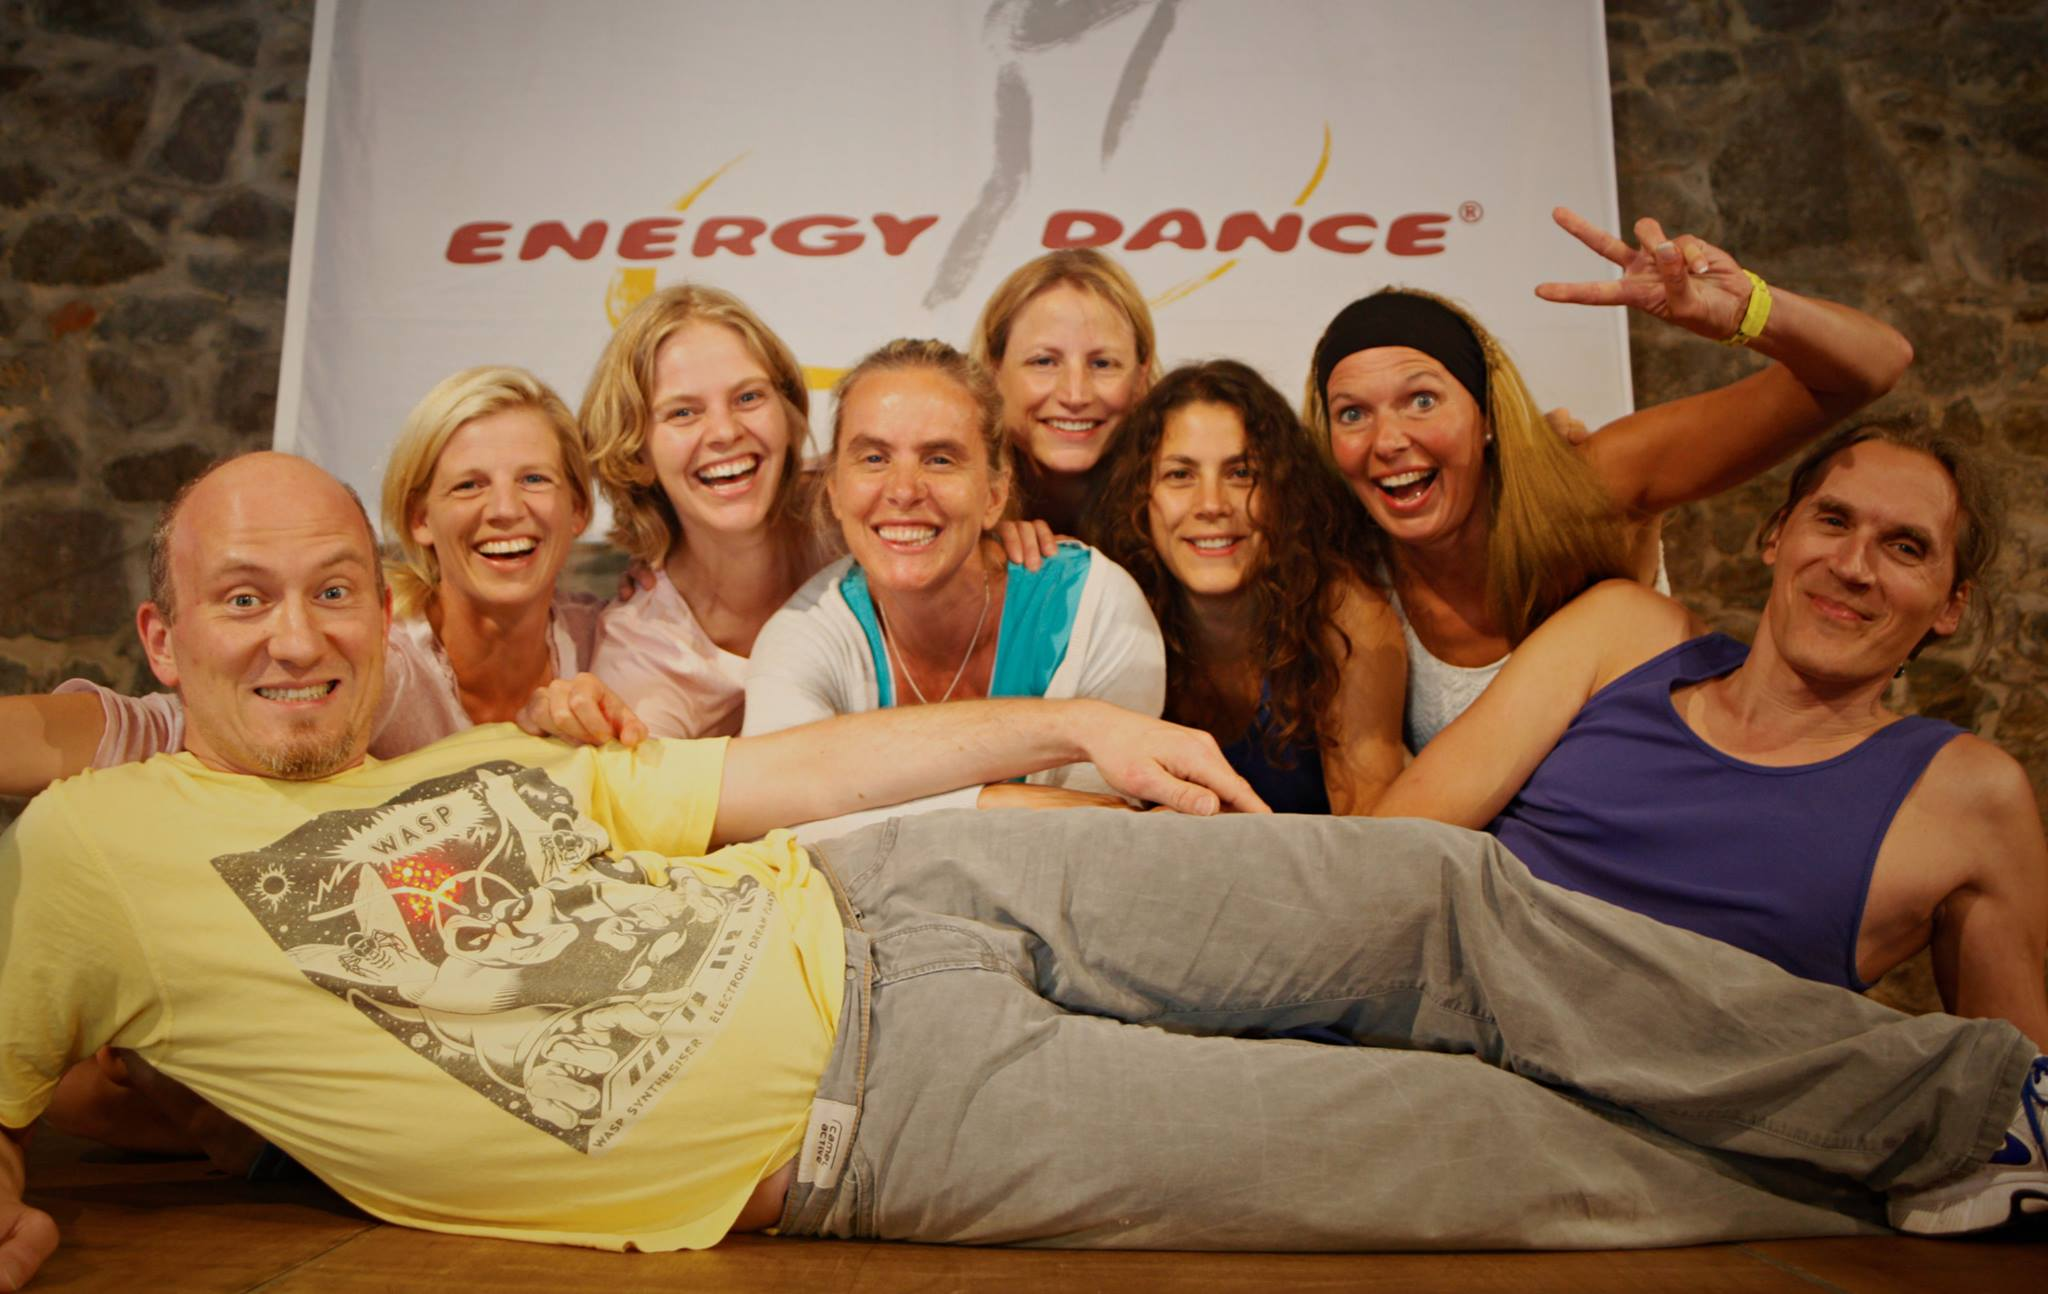 ENERGY DANCE® Festival 2013 - Technik & Helfer